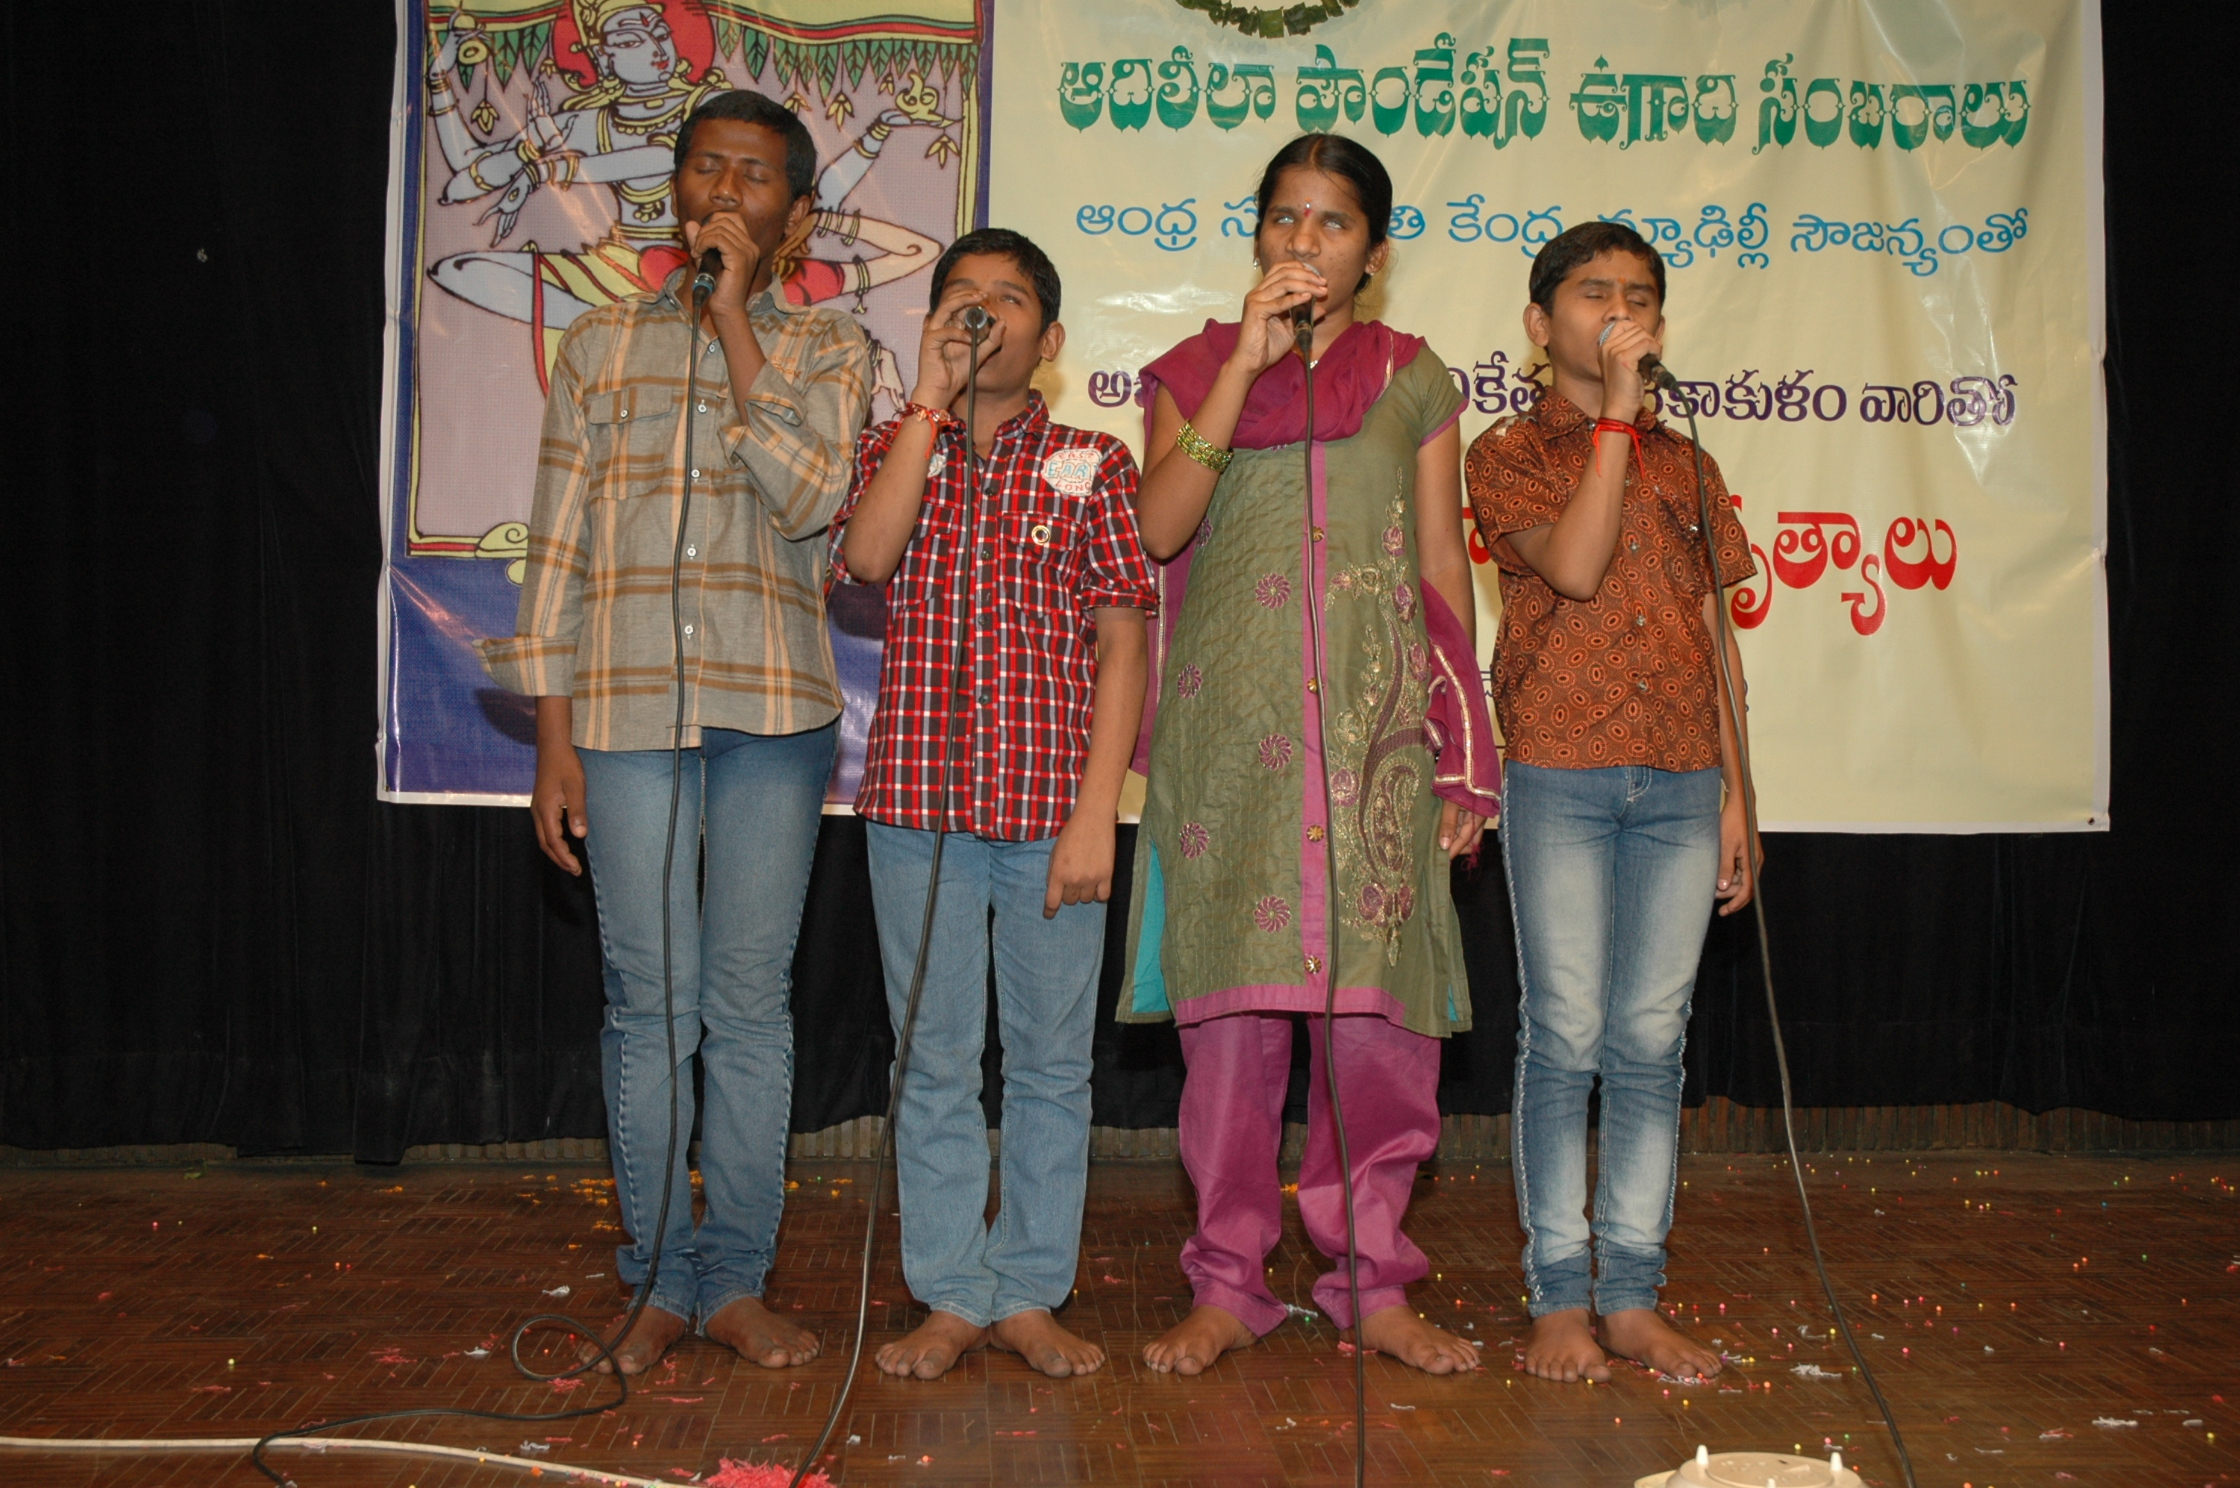 Performance by blind childrens